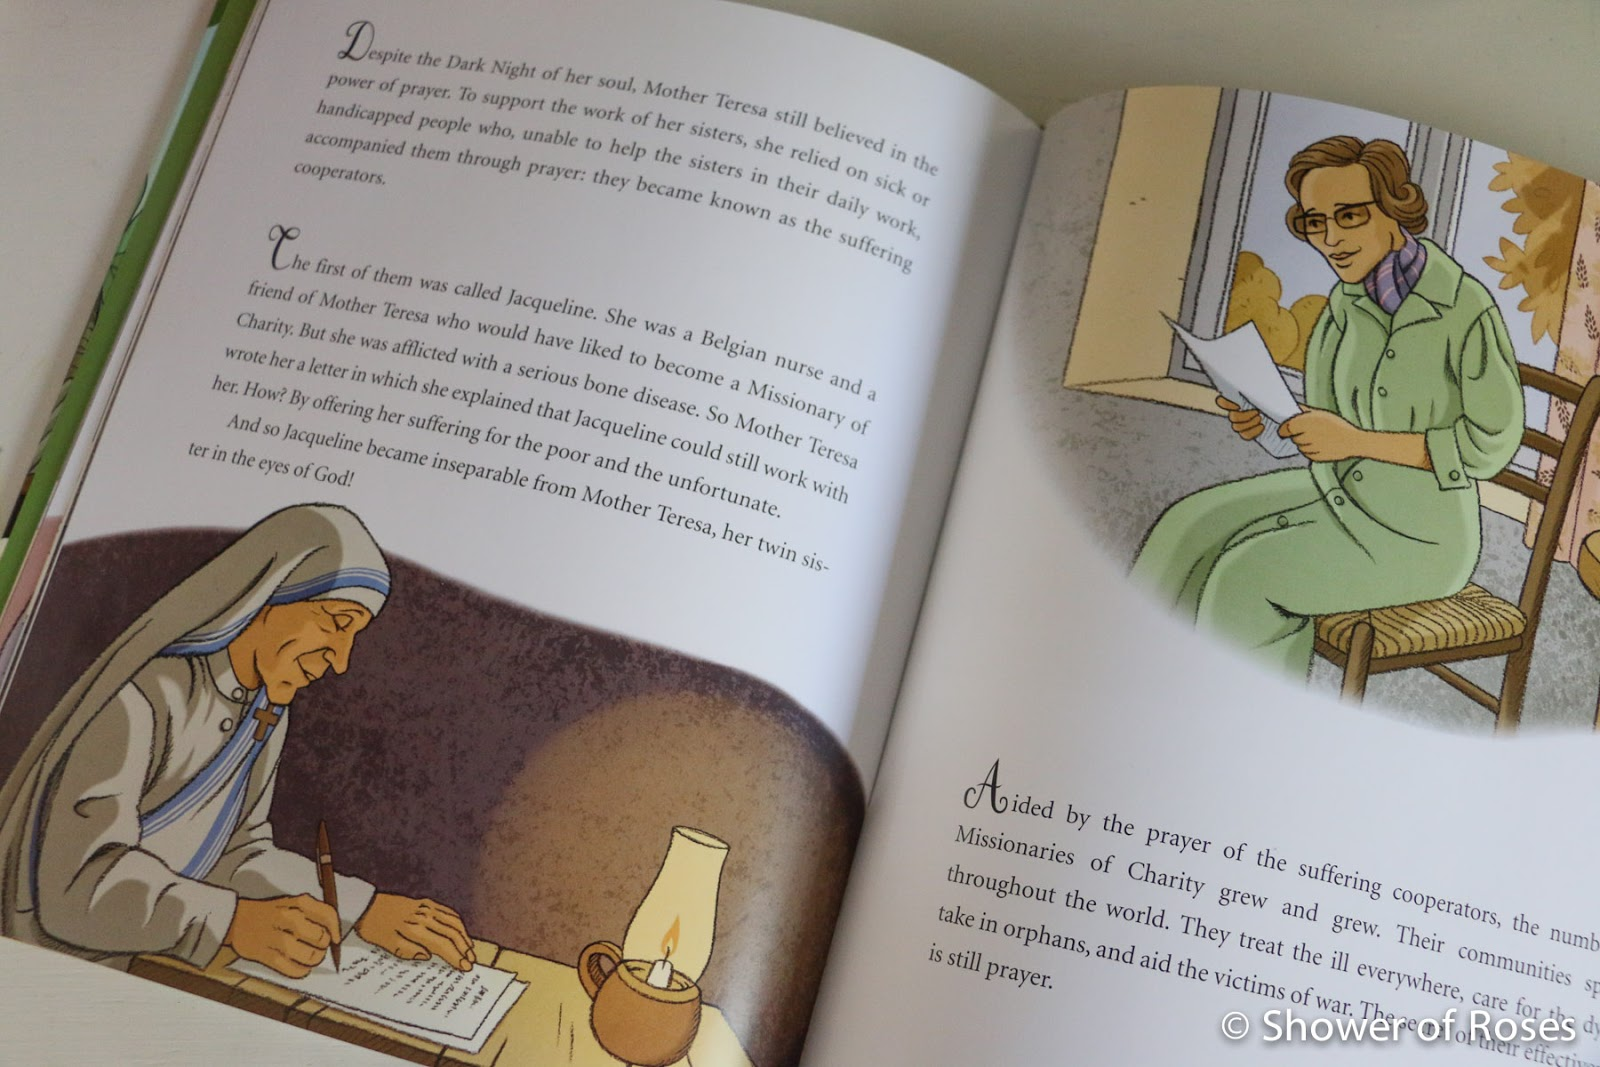 Books by Mother Teresa